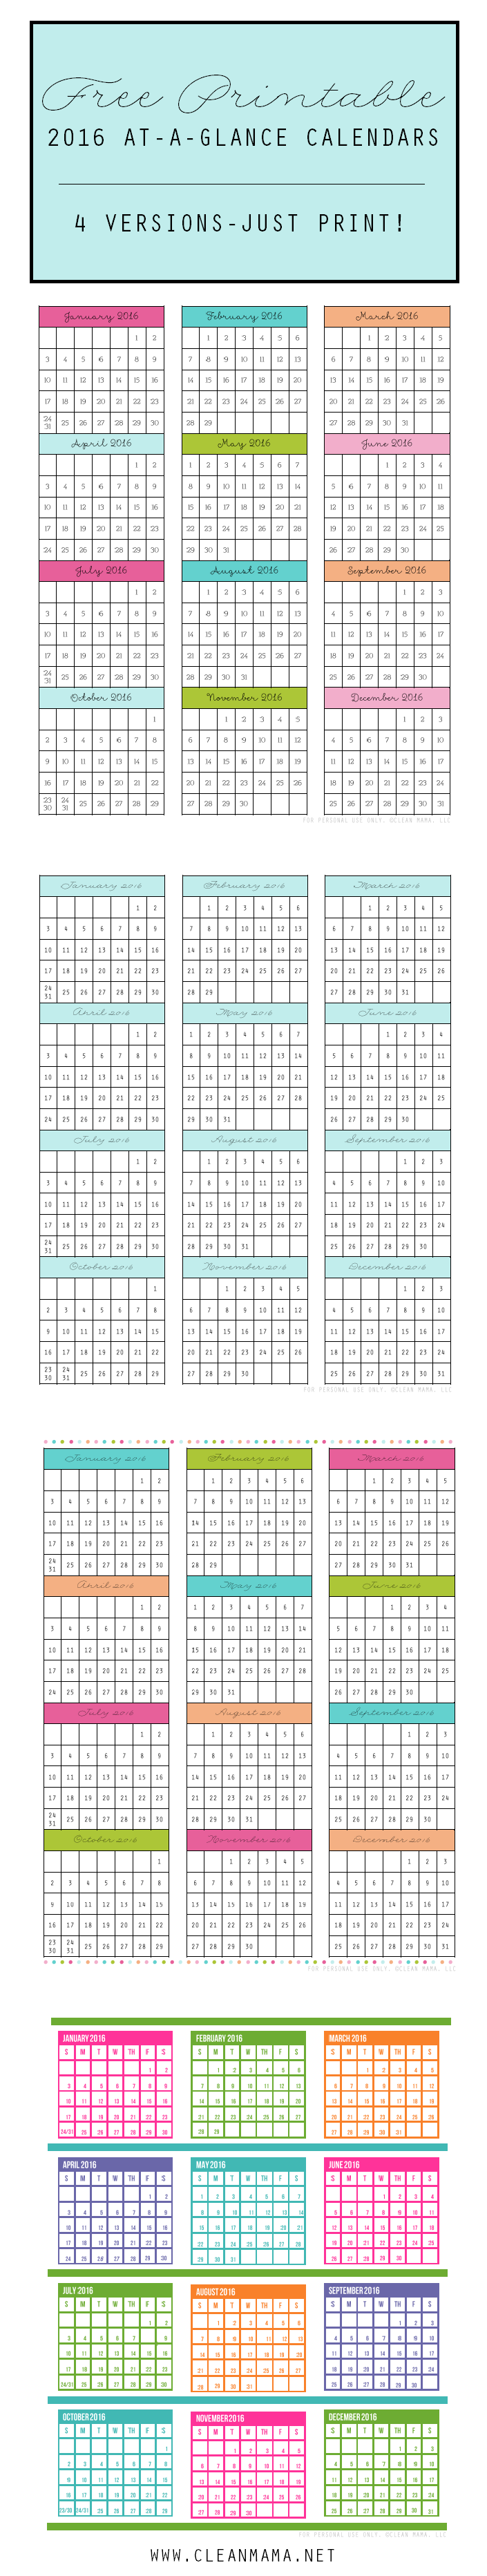 FREE Printable 2016 At-A-Glance Calendars - 4 Versions - courtesy of Clean Mama